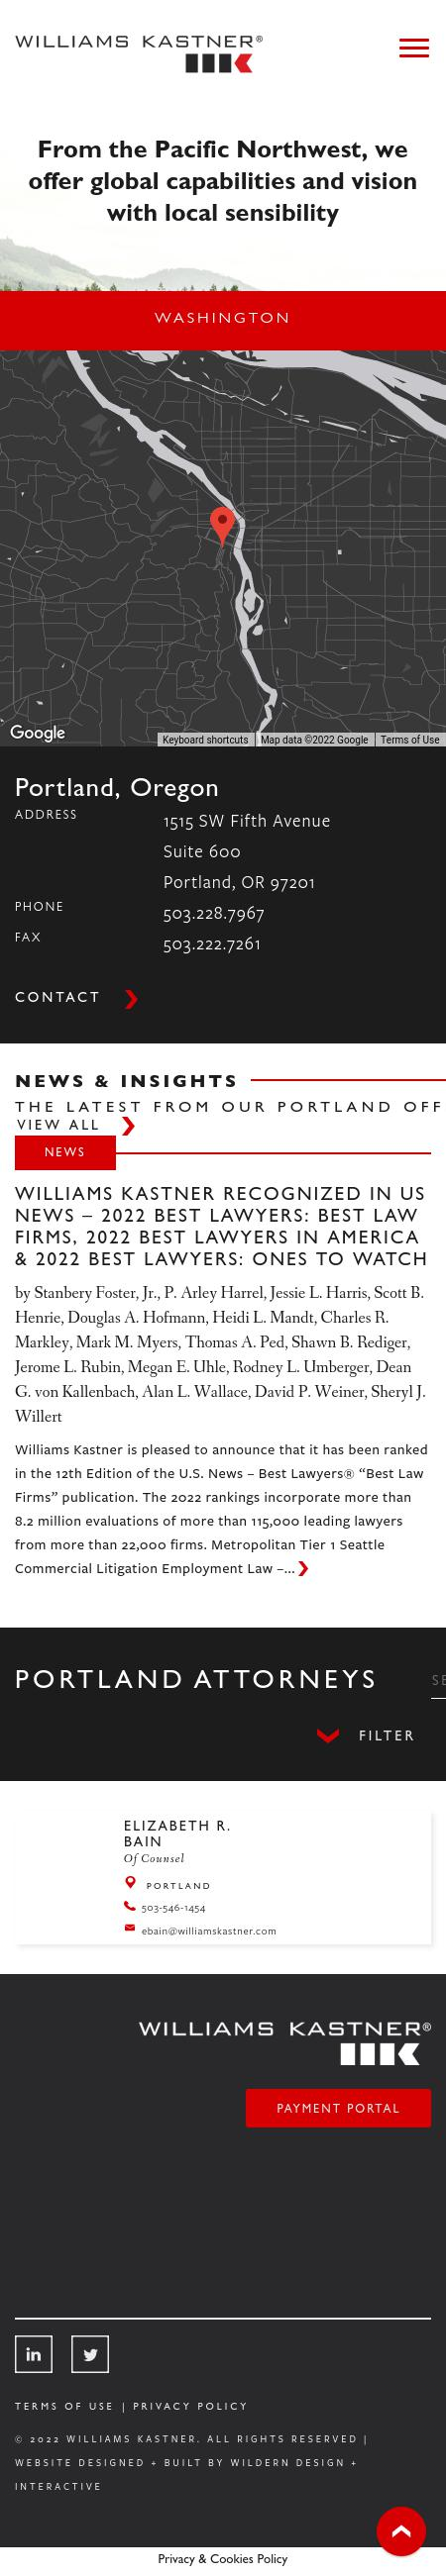 Greene & Markley PC - Portland OR Lawyers